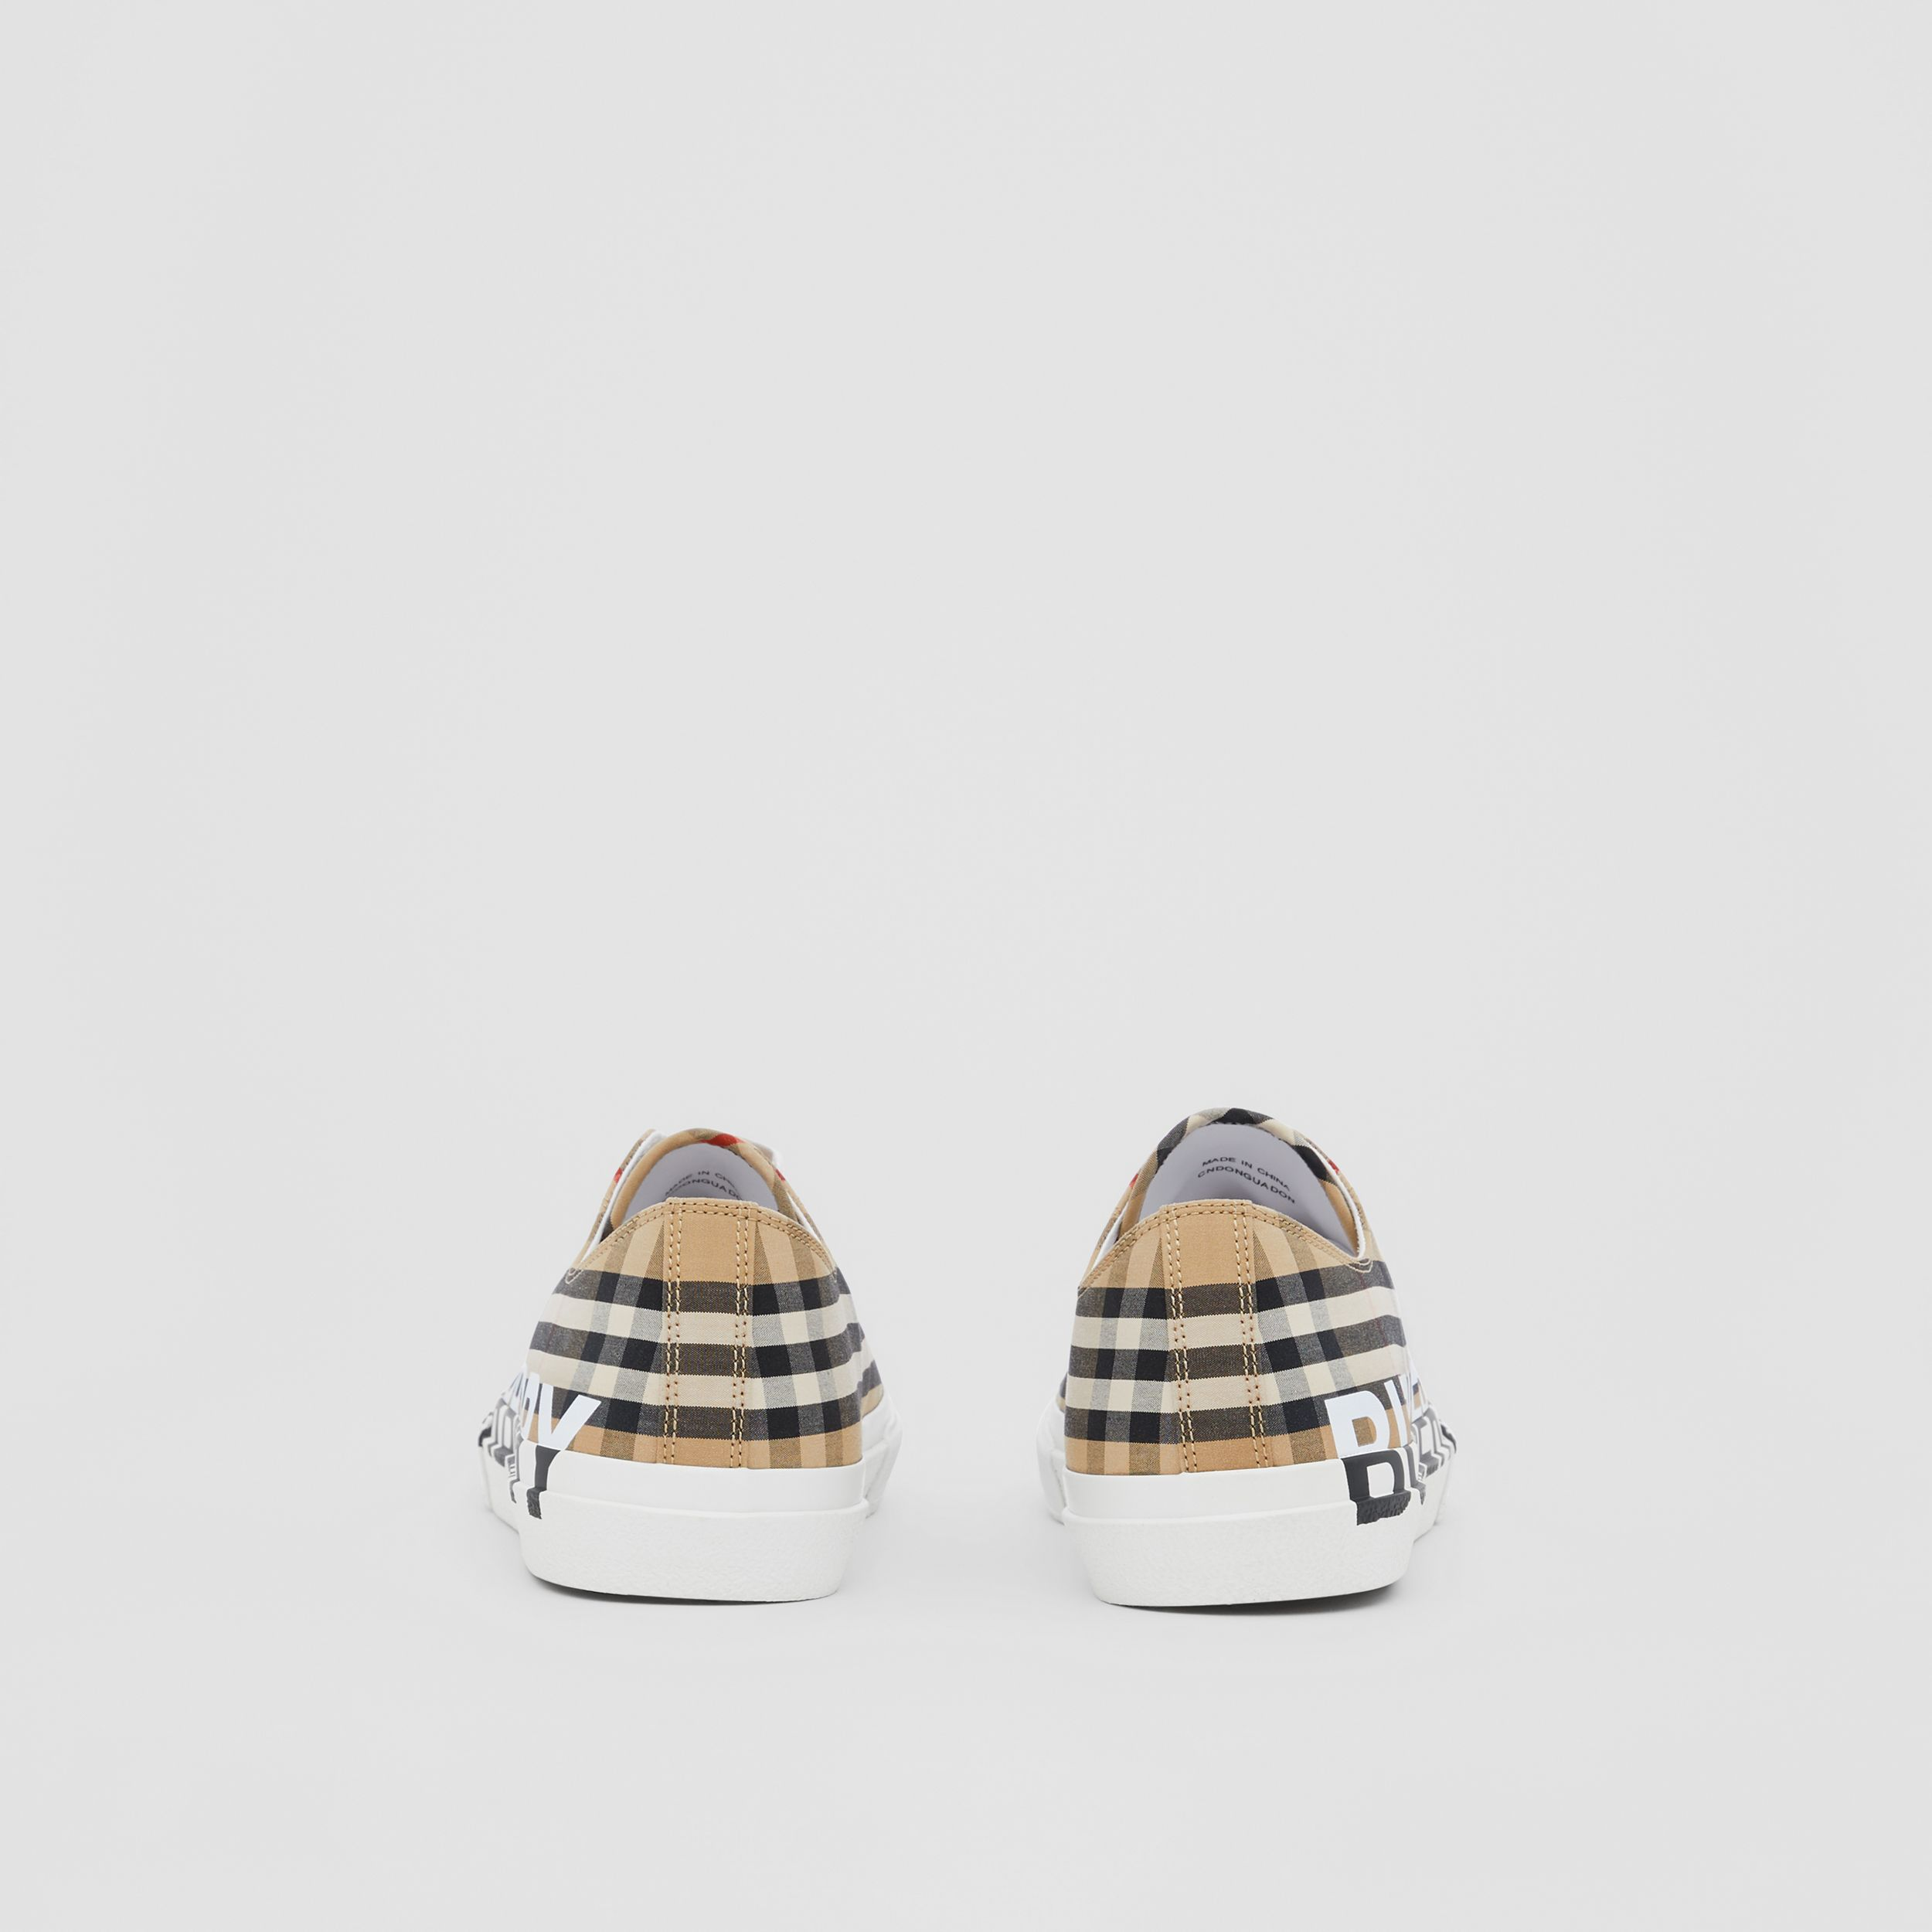 Logo Print Vintage Check Cotton Sneakers in Archive Beige - Men | Burberry United States - 4